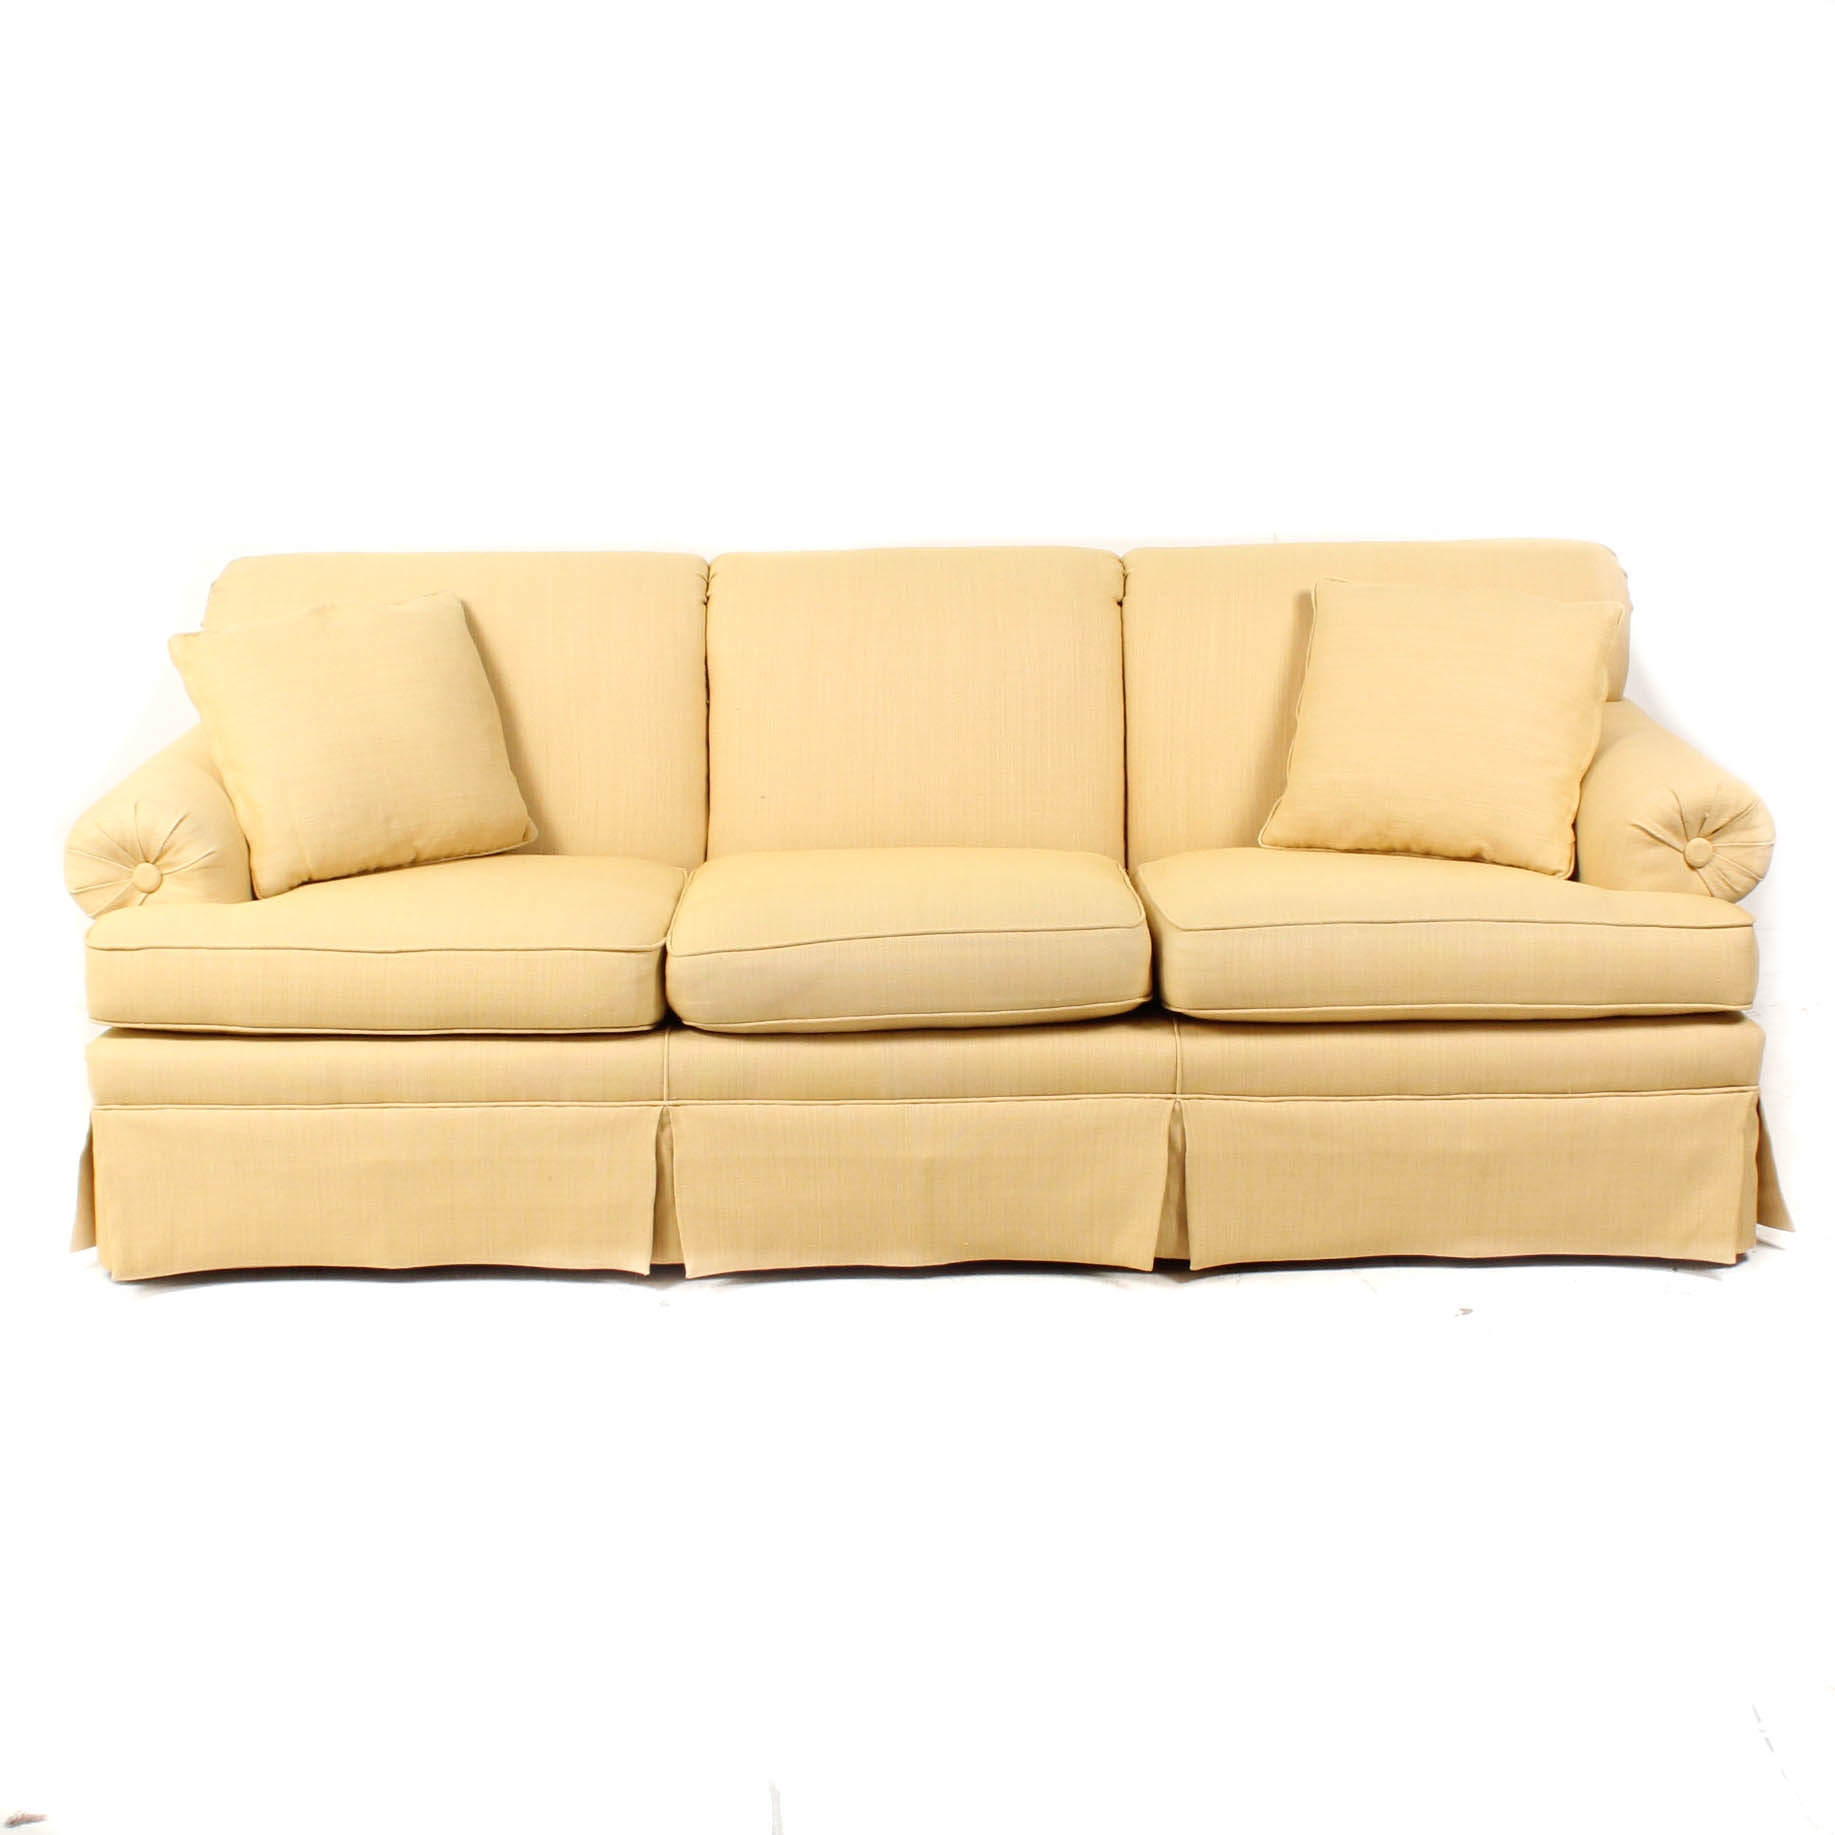 Yellow Upholstered Contemporary Couch